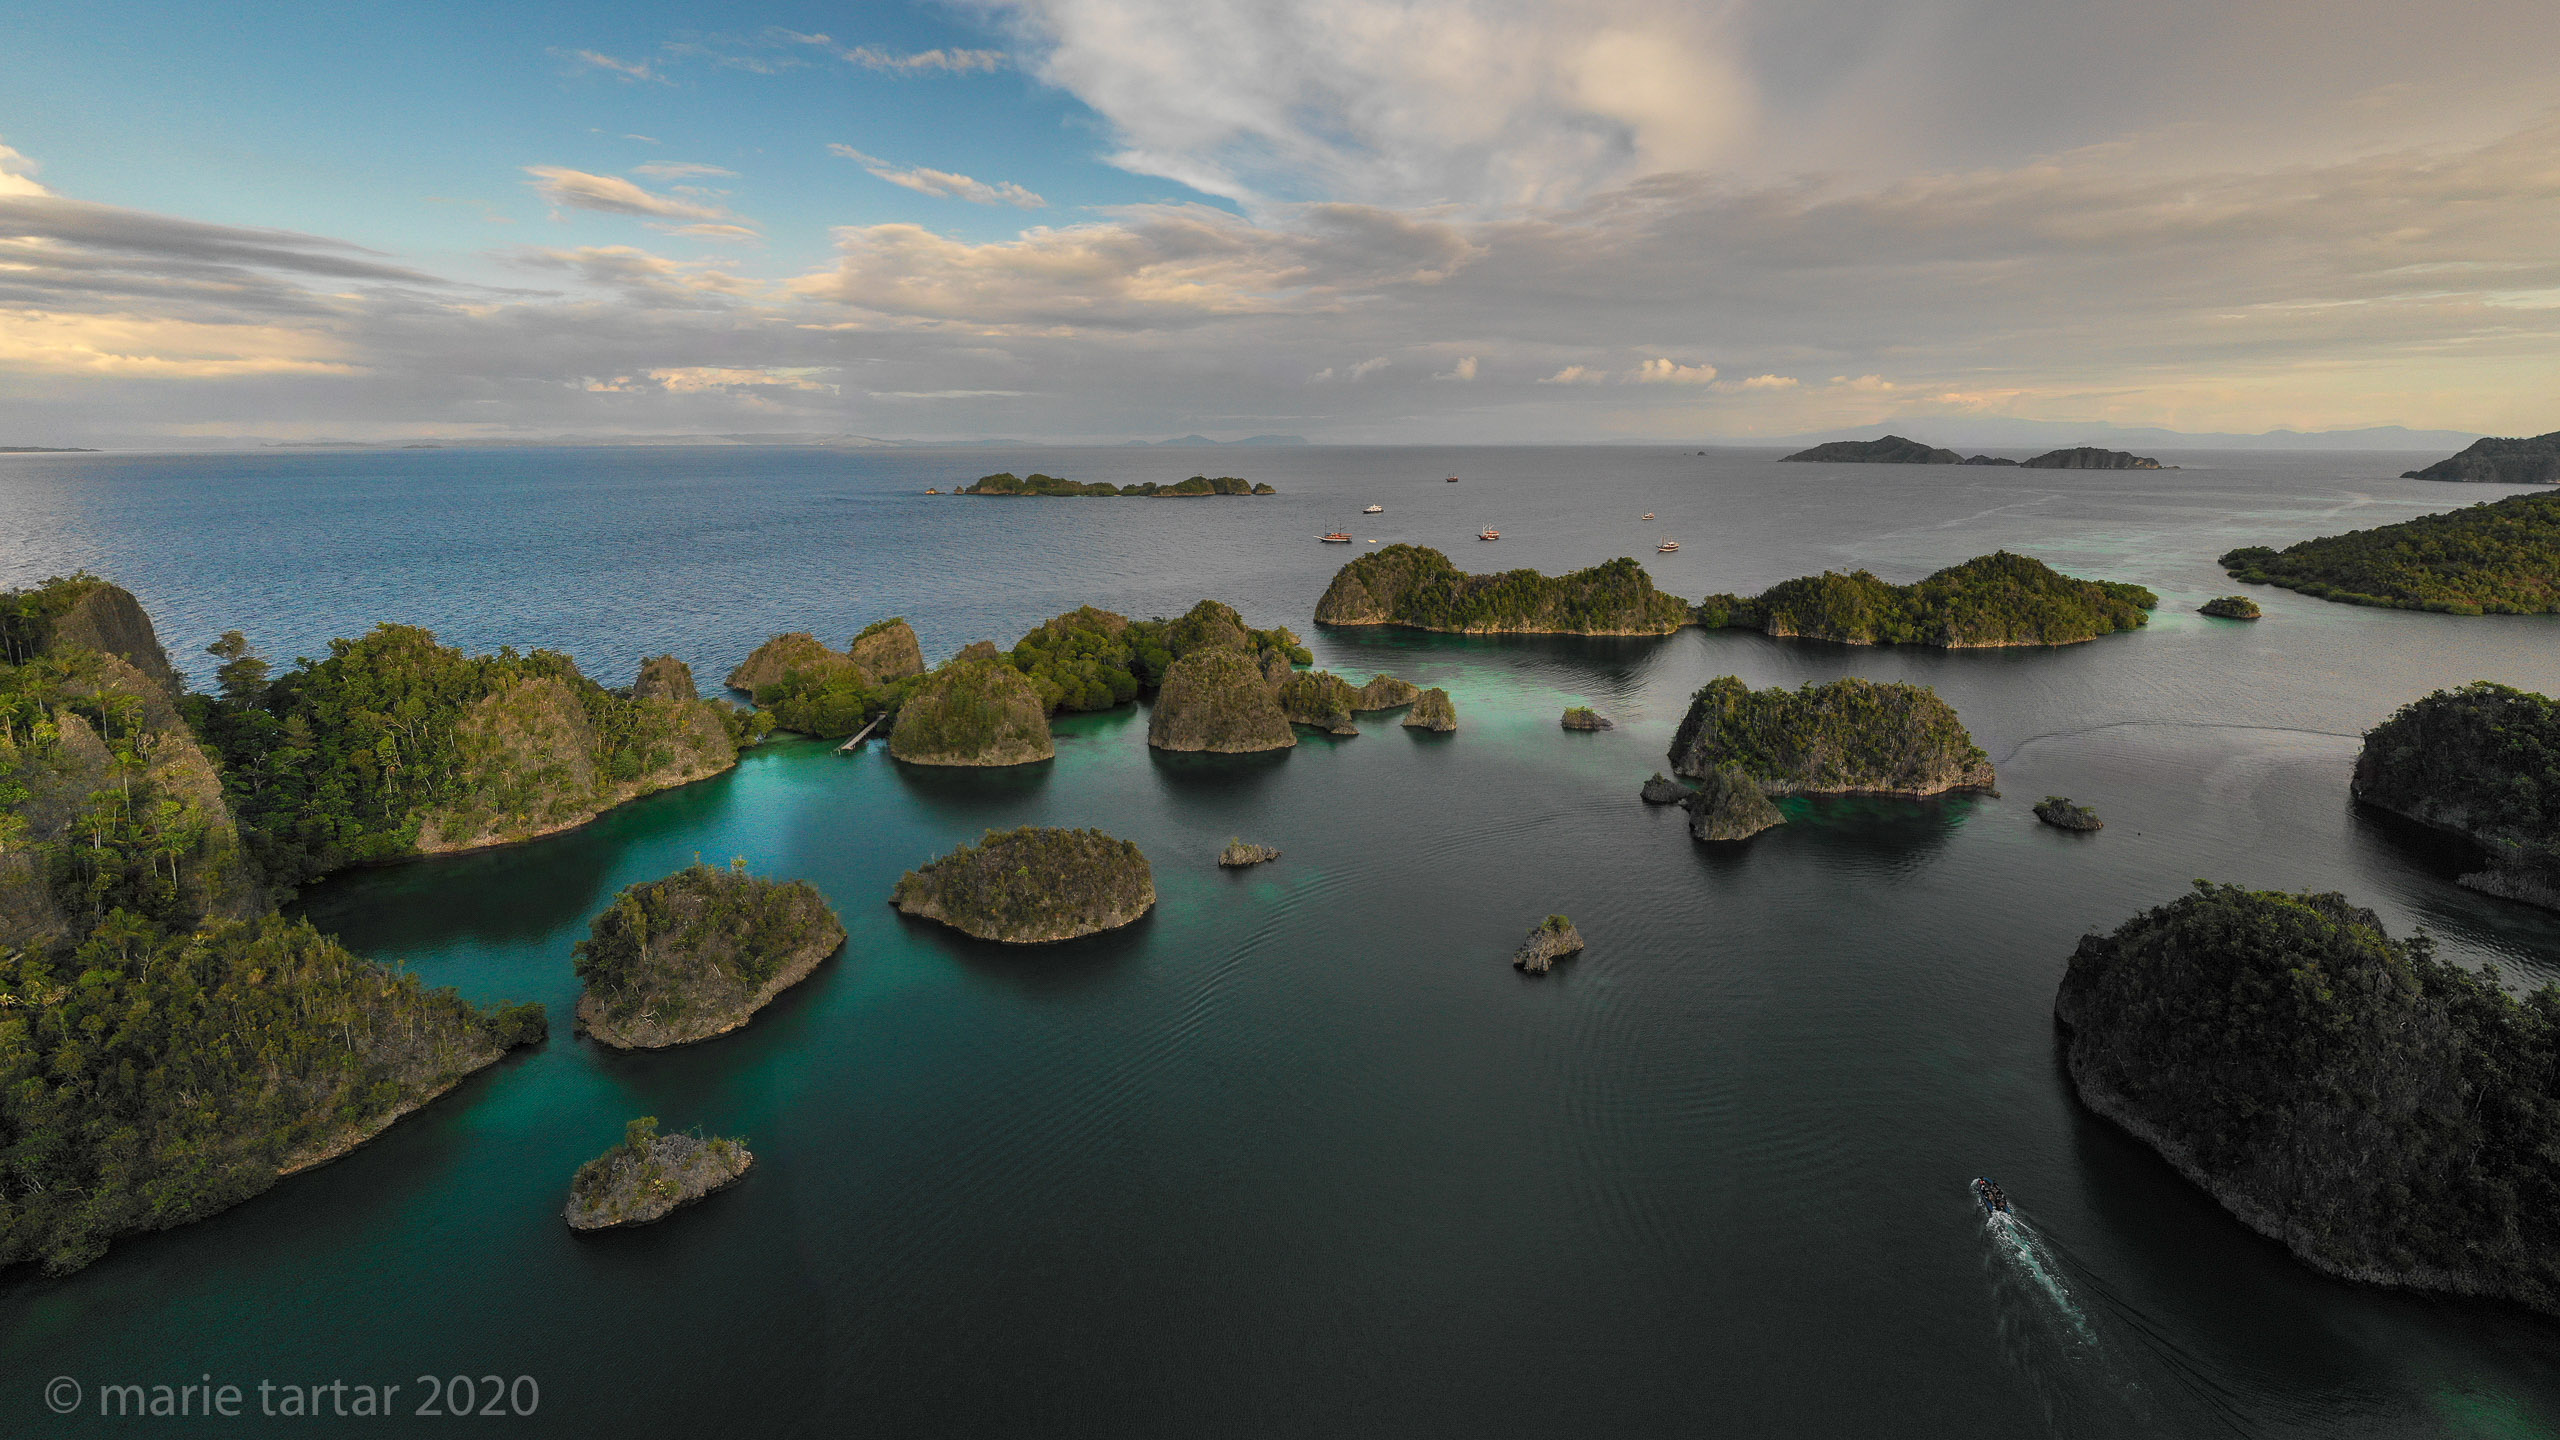 aerial view of Indonesian archipelago in Raja Ampat